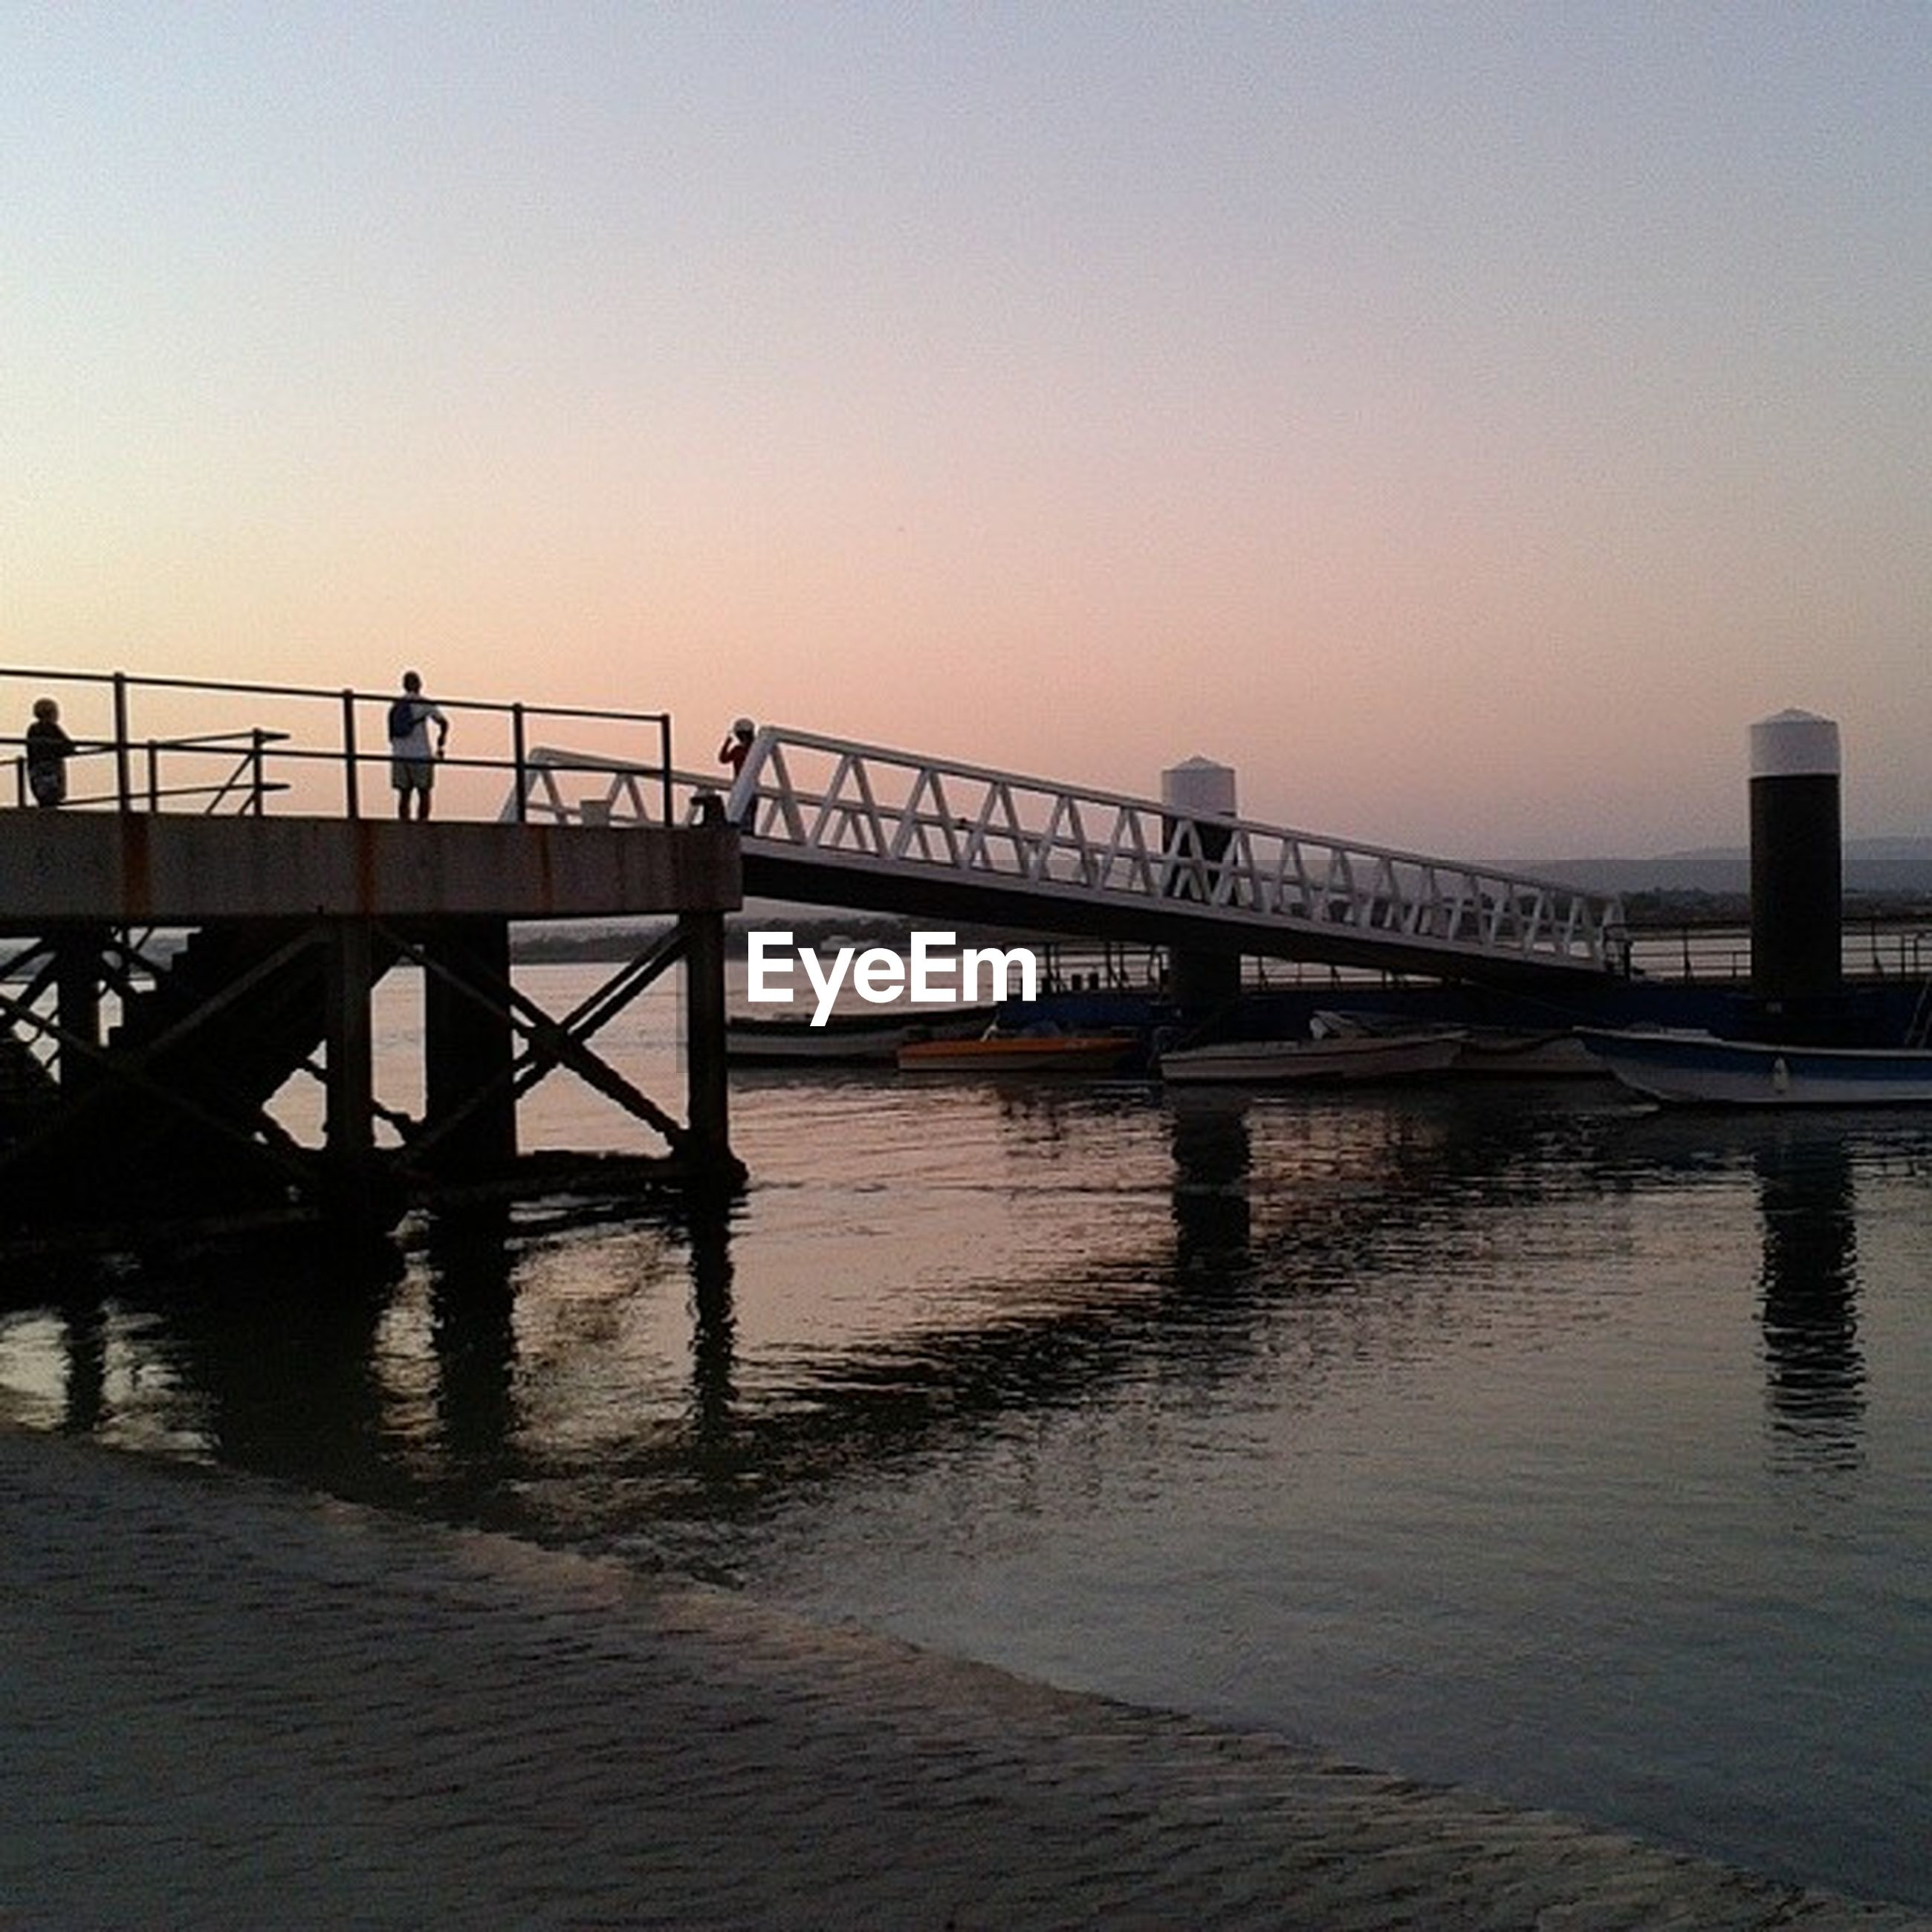 water, clear sky, sunset, built structure, copy space, architecture, bridge - man made structure, connection, pier, silhouette, river, railing, sea, bridge, tranquility, reflection, waterfront, nature, transportation, tranquil scene